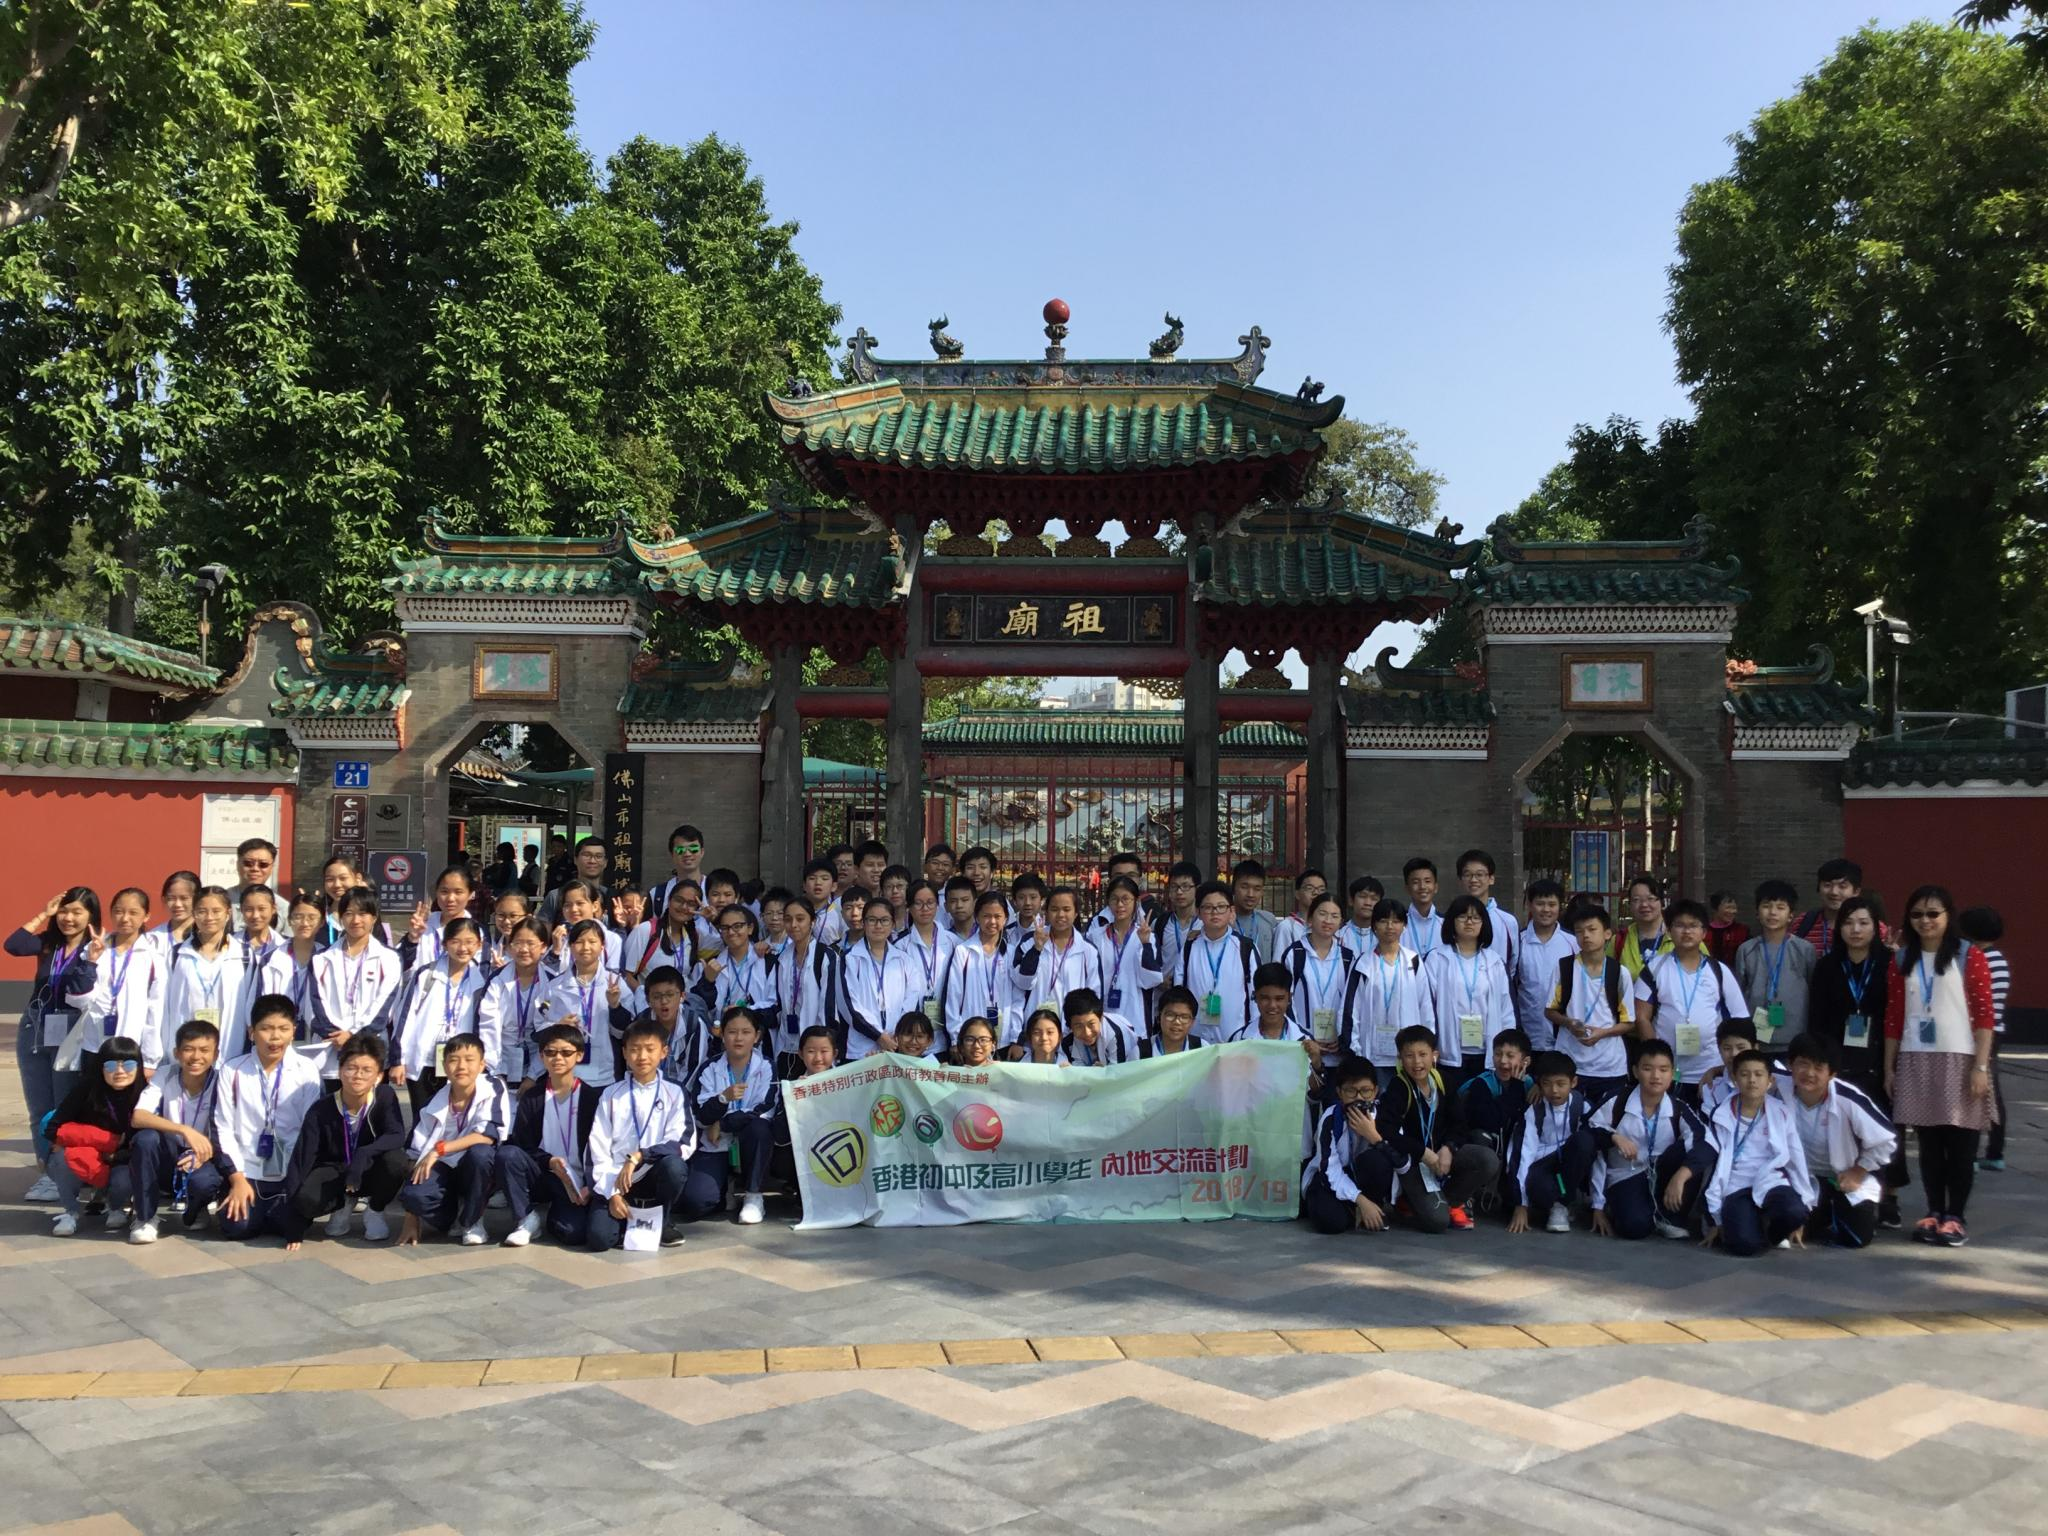 Students pose in front of Foshan Ancestral Temple.